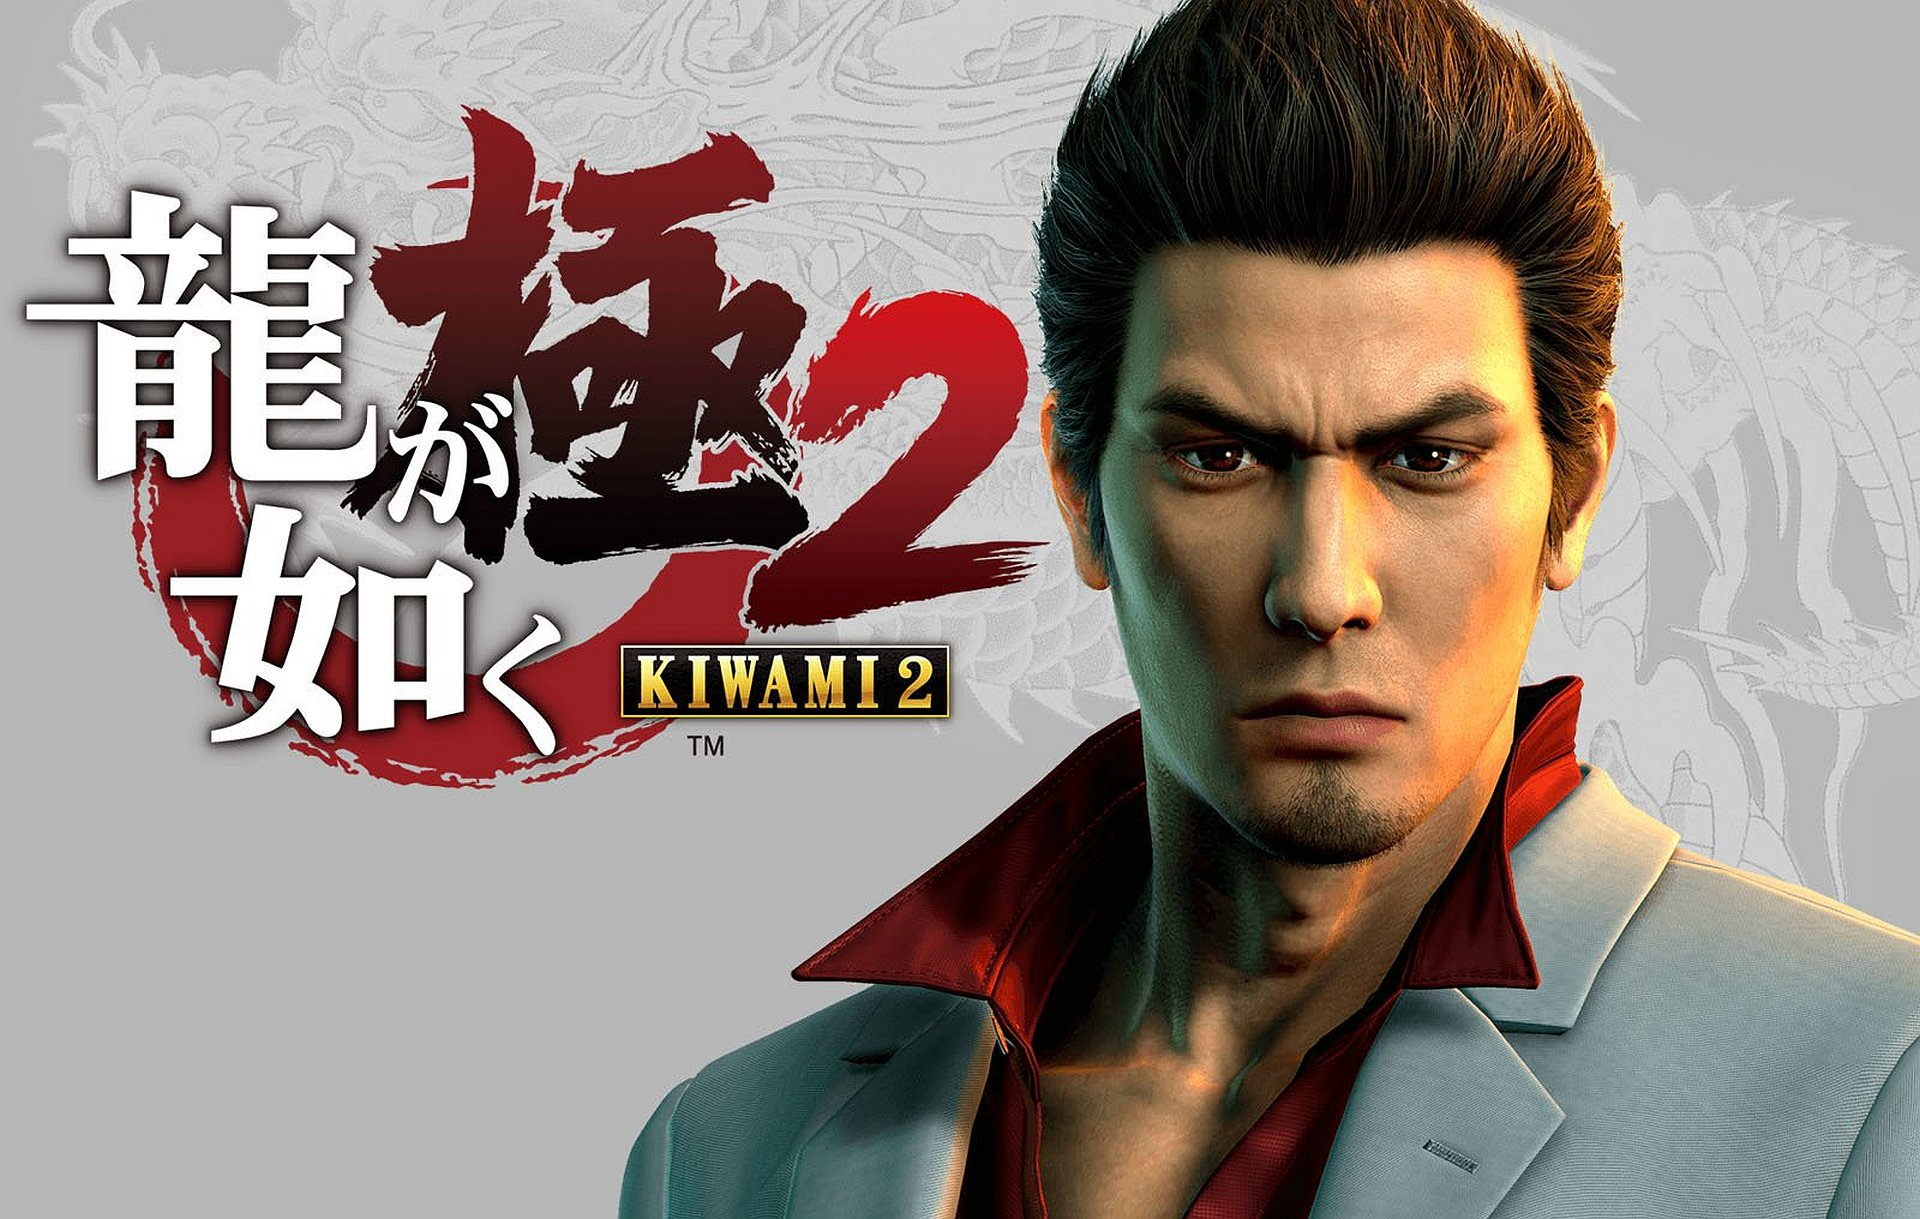 Yakuza Kiwami 2 for PC Just Got Rated by the ESRB